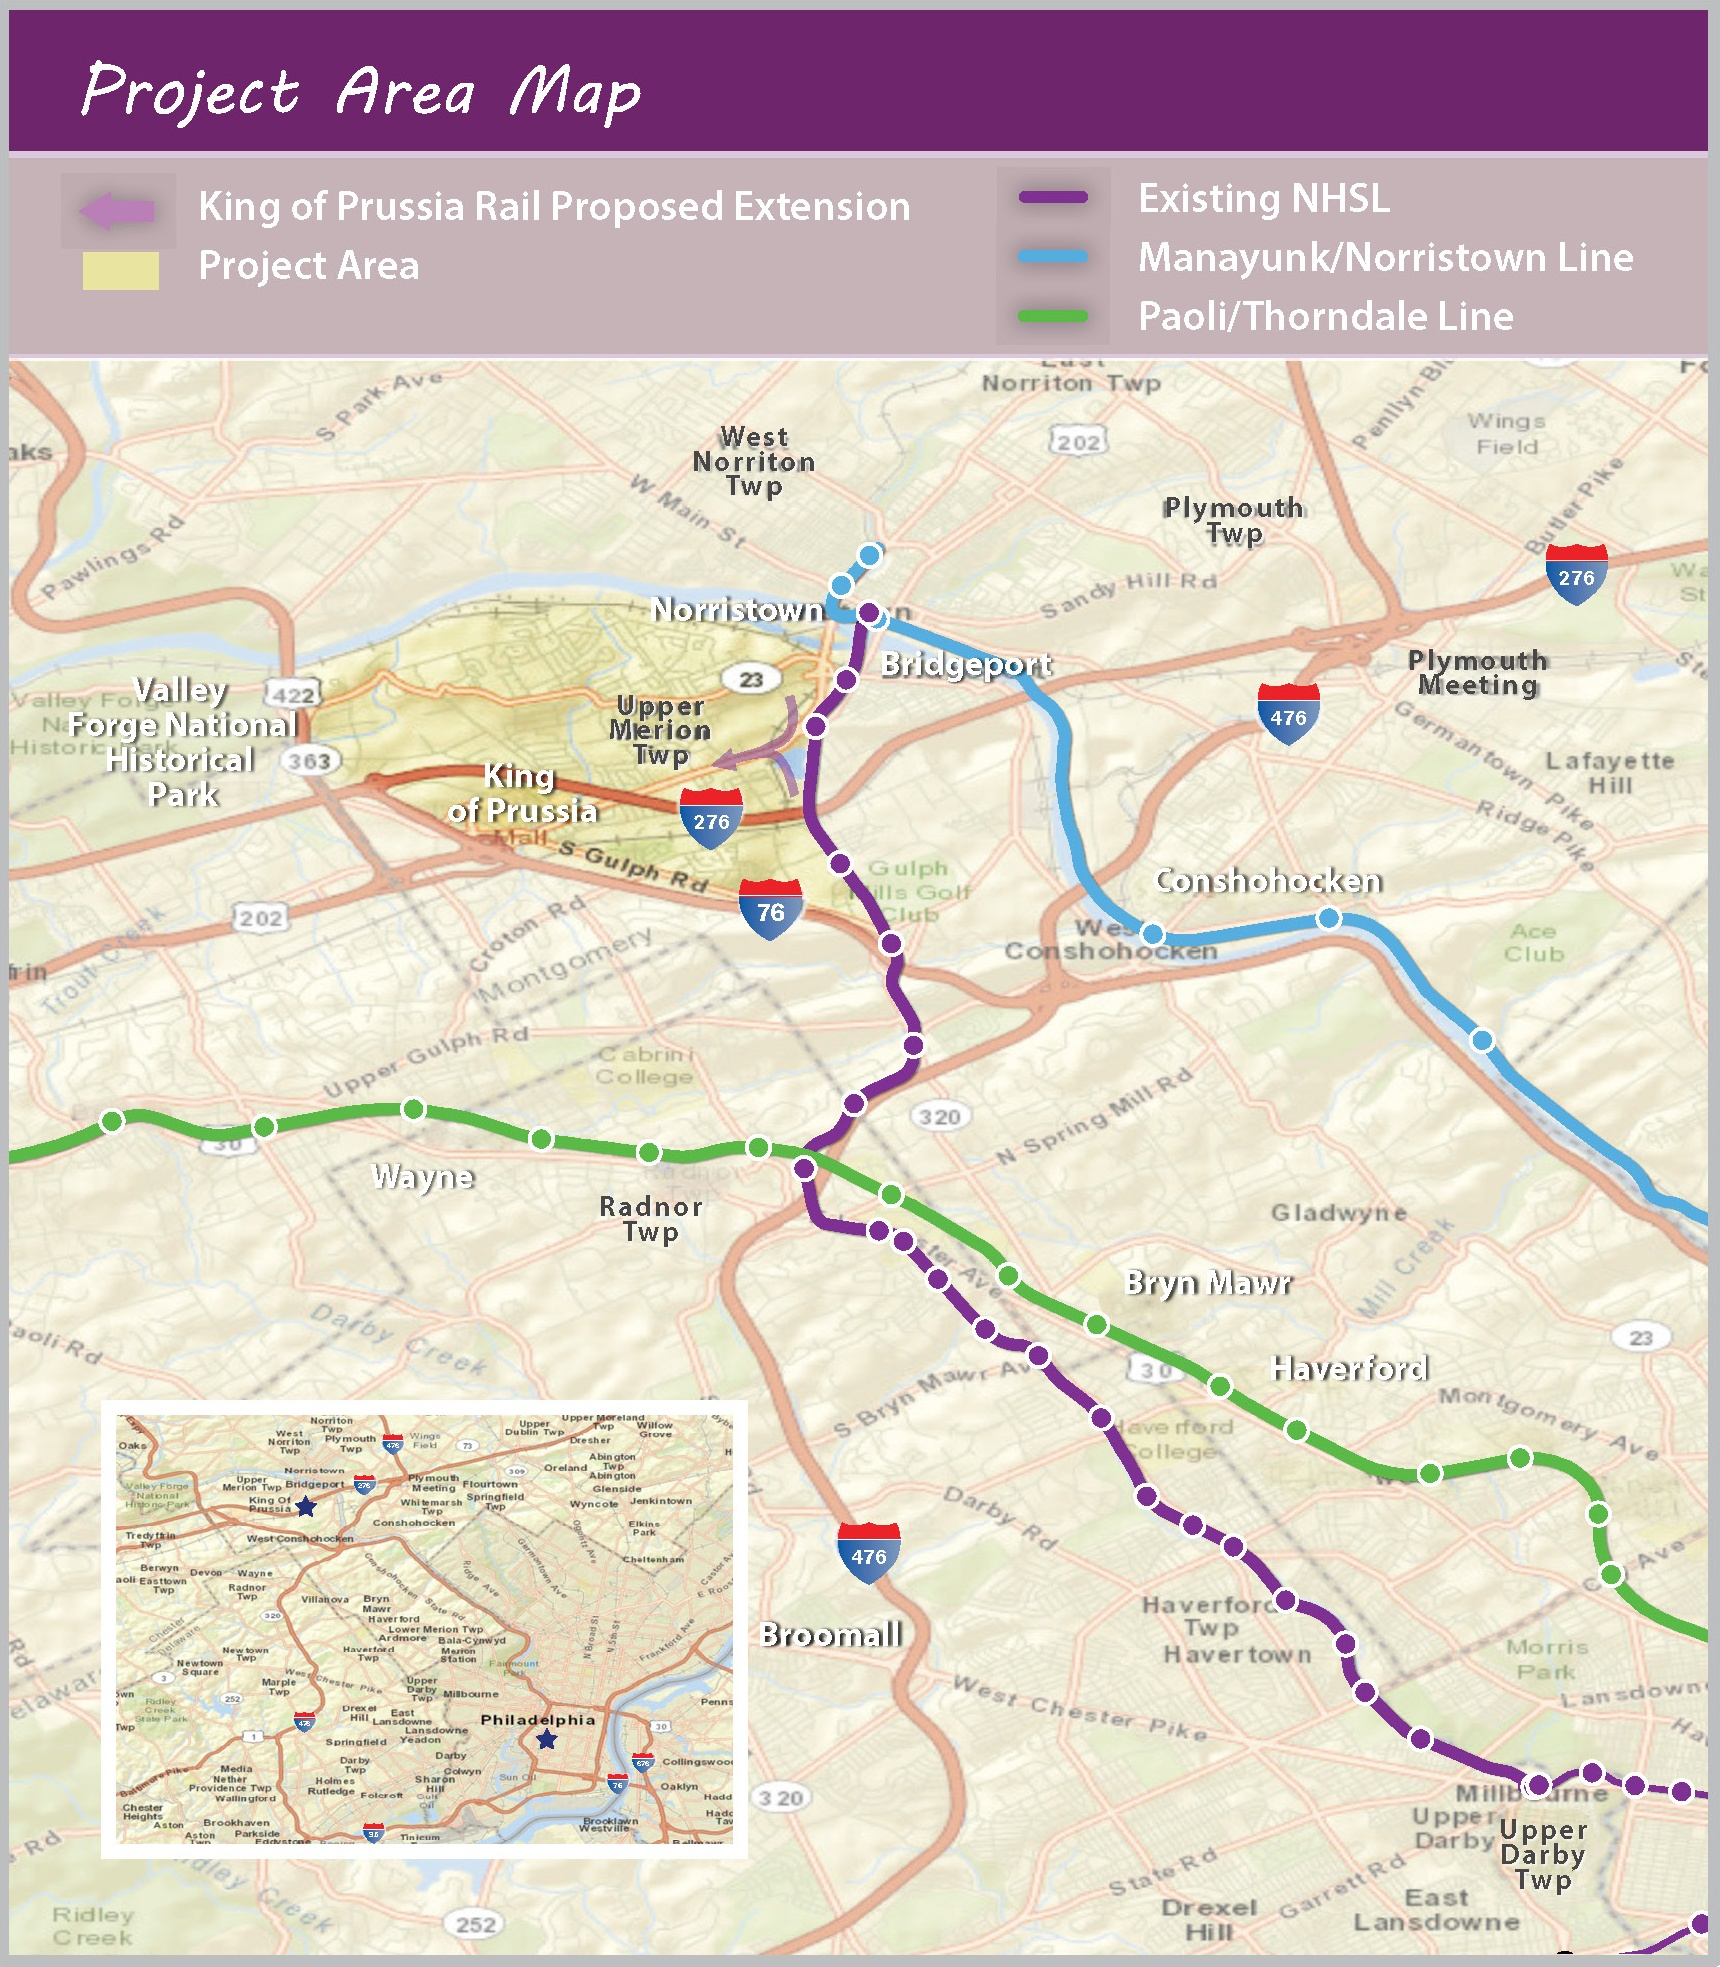 Proposed King of Prussia rail extension